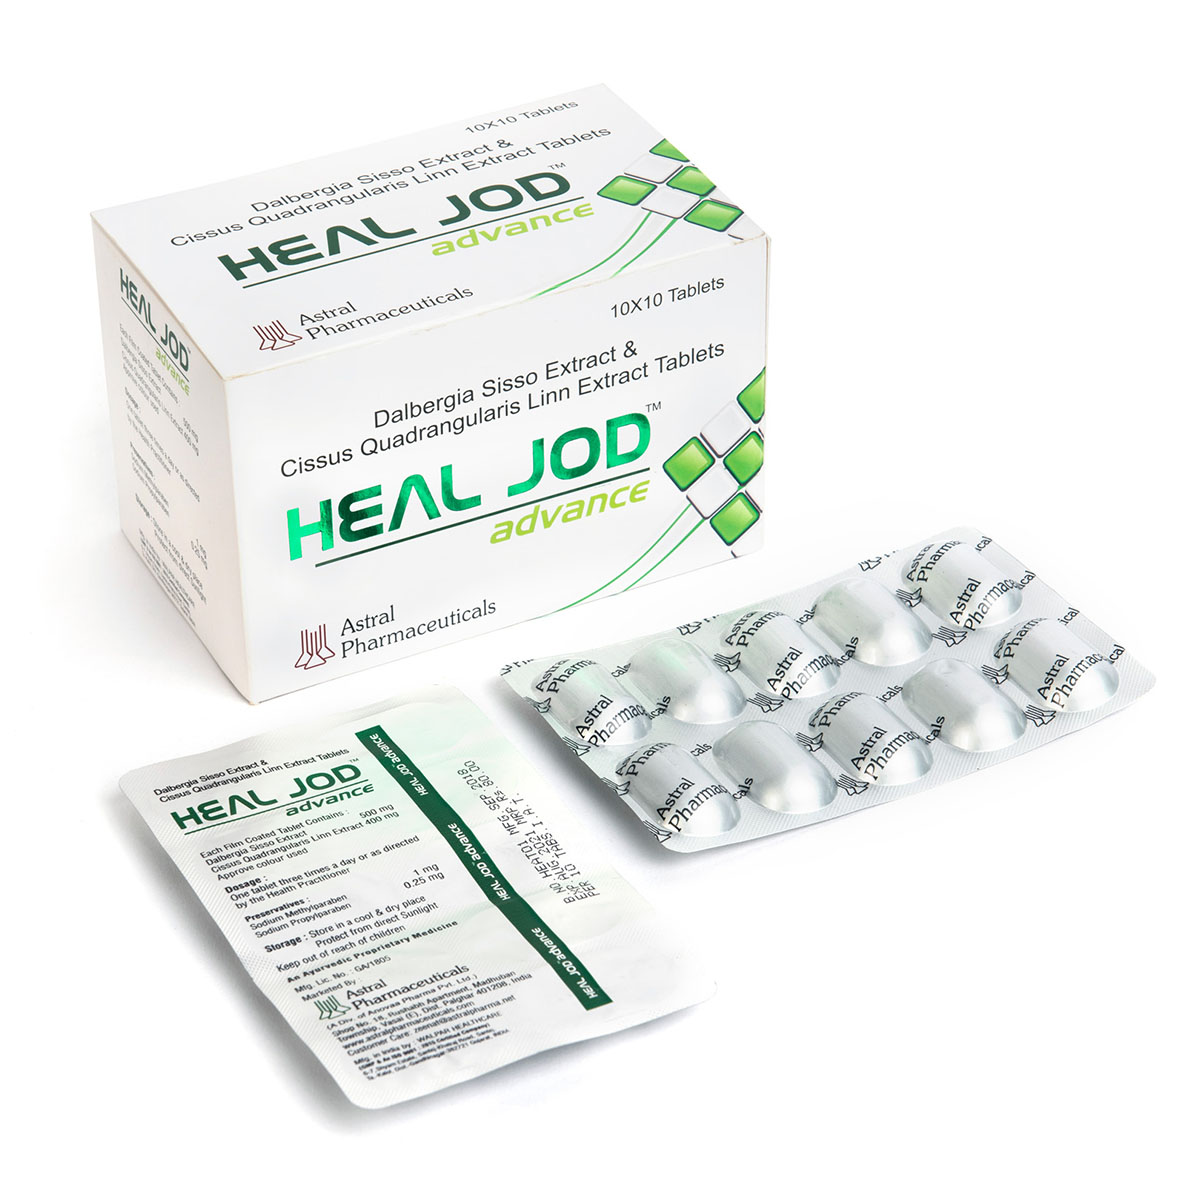 Astral Pharmaceuticals - Top Manufacturer and exporter of